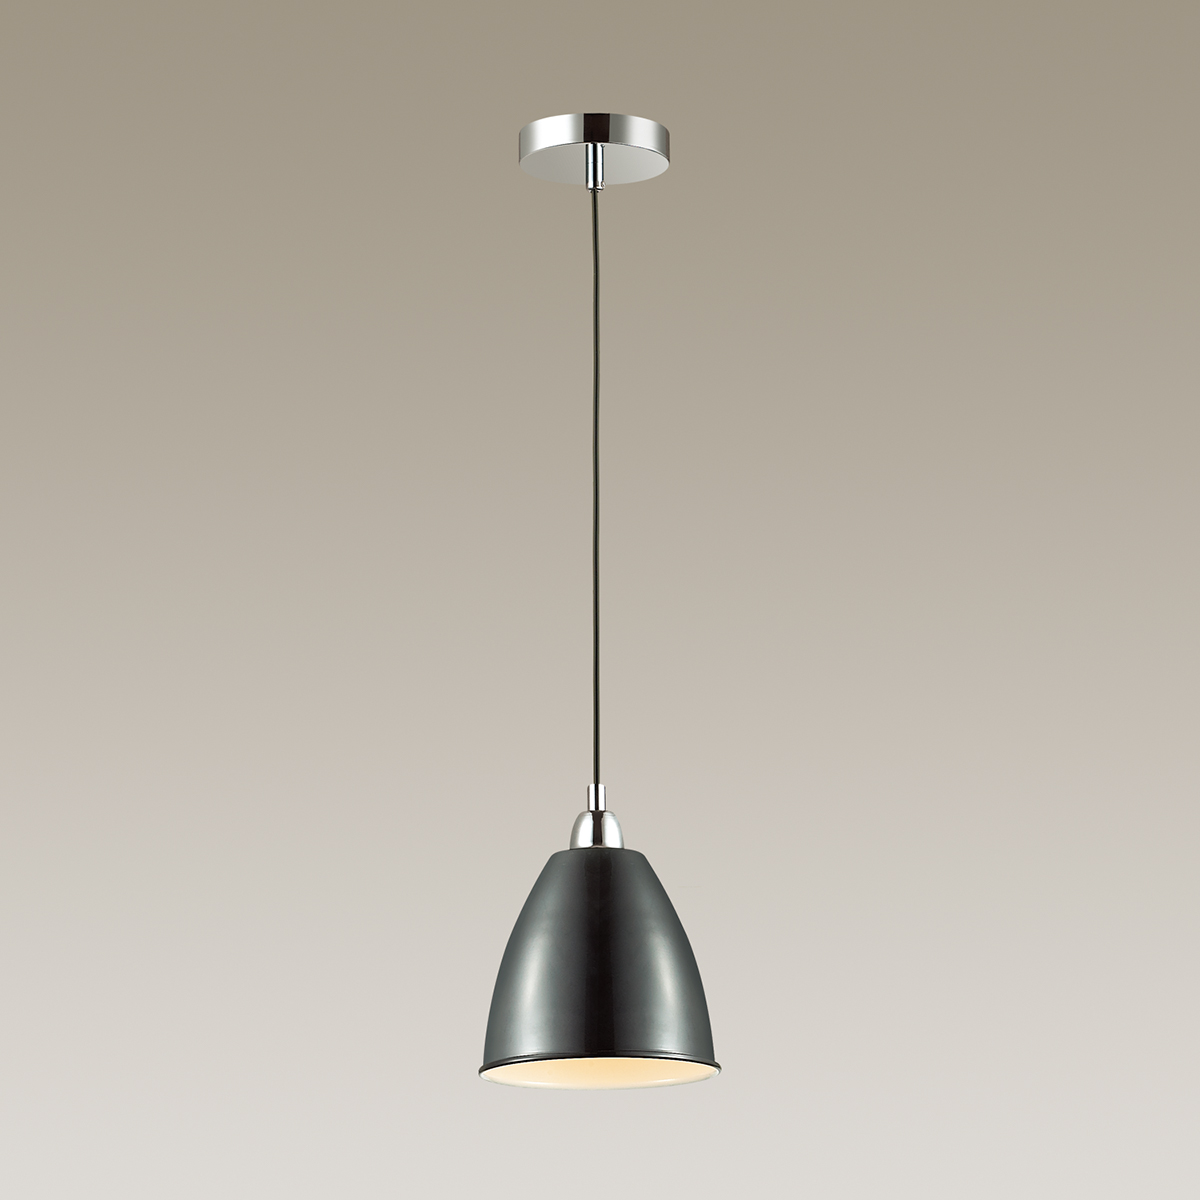 Подвес ODEON LIGHT арт. 3974/1